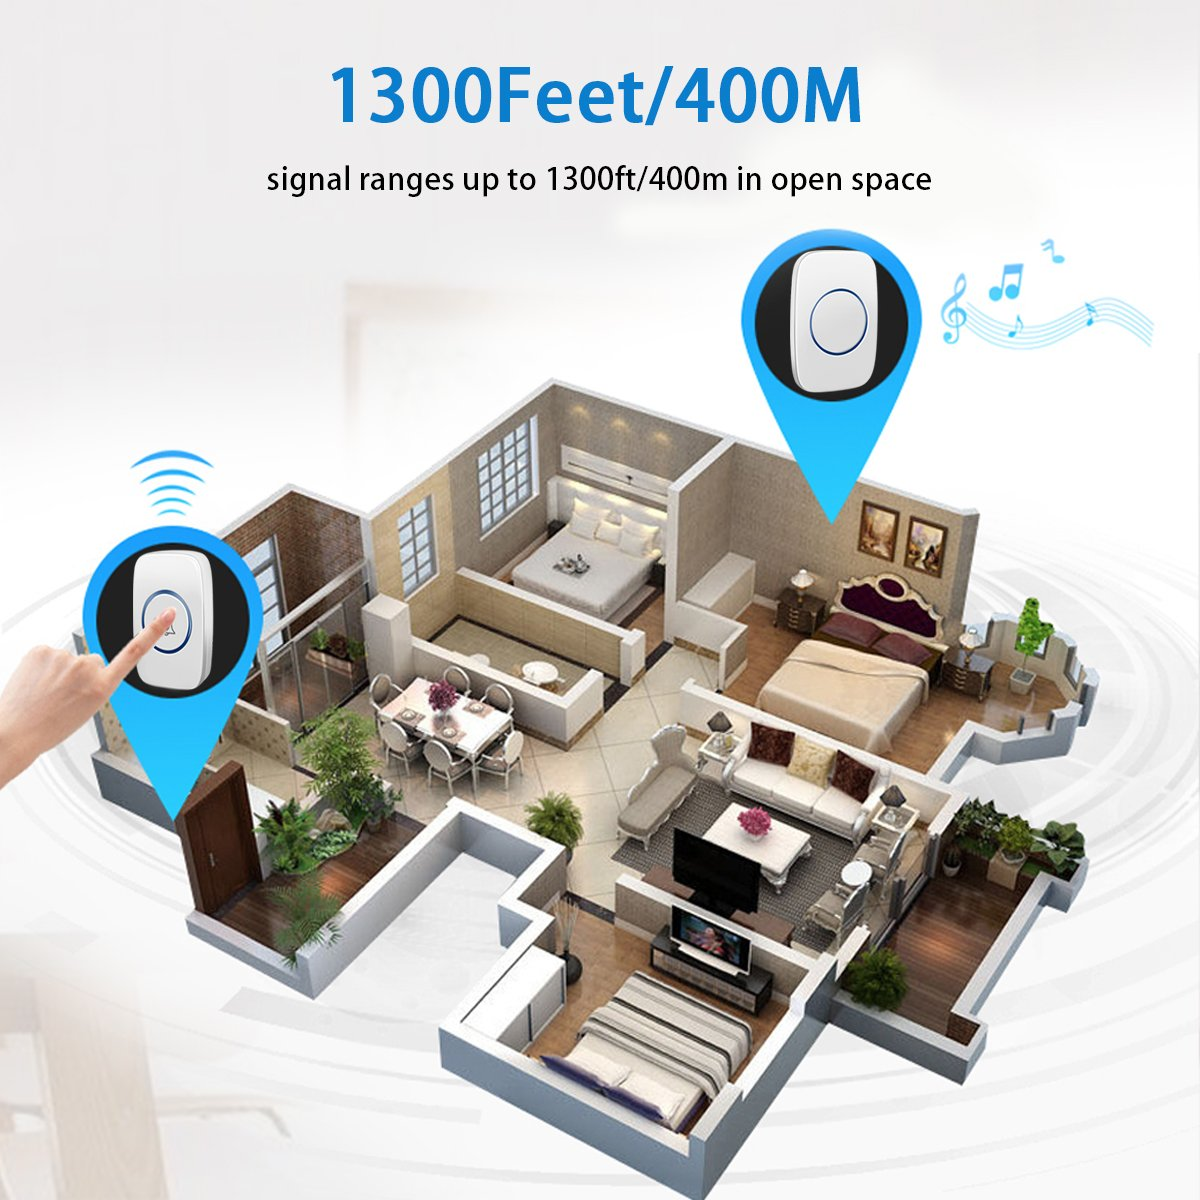 Wireless Doorbells for Home-[Upgraded 2018] Waterproof Doorbells Transmitter for Home and Office at 1300feet Range,52 Doorbell Chimes 5 Volume 1 Transmitter 2 Receivers by MICKYMIN (Image #3)